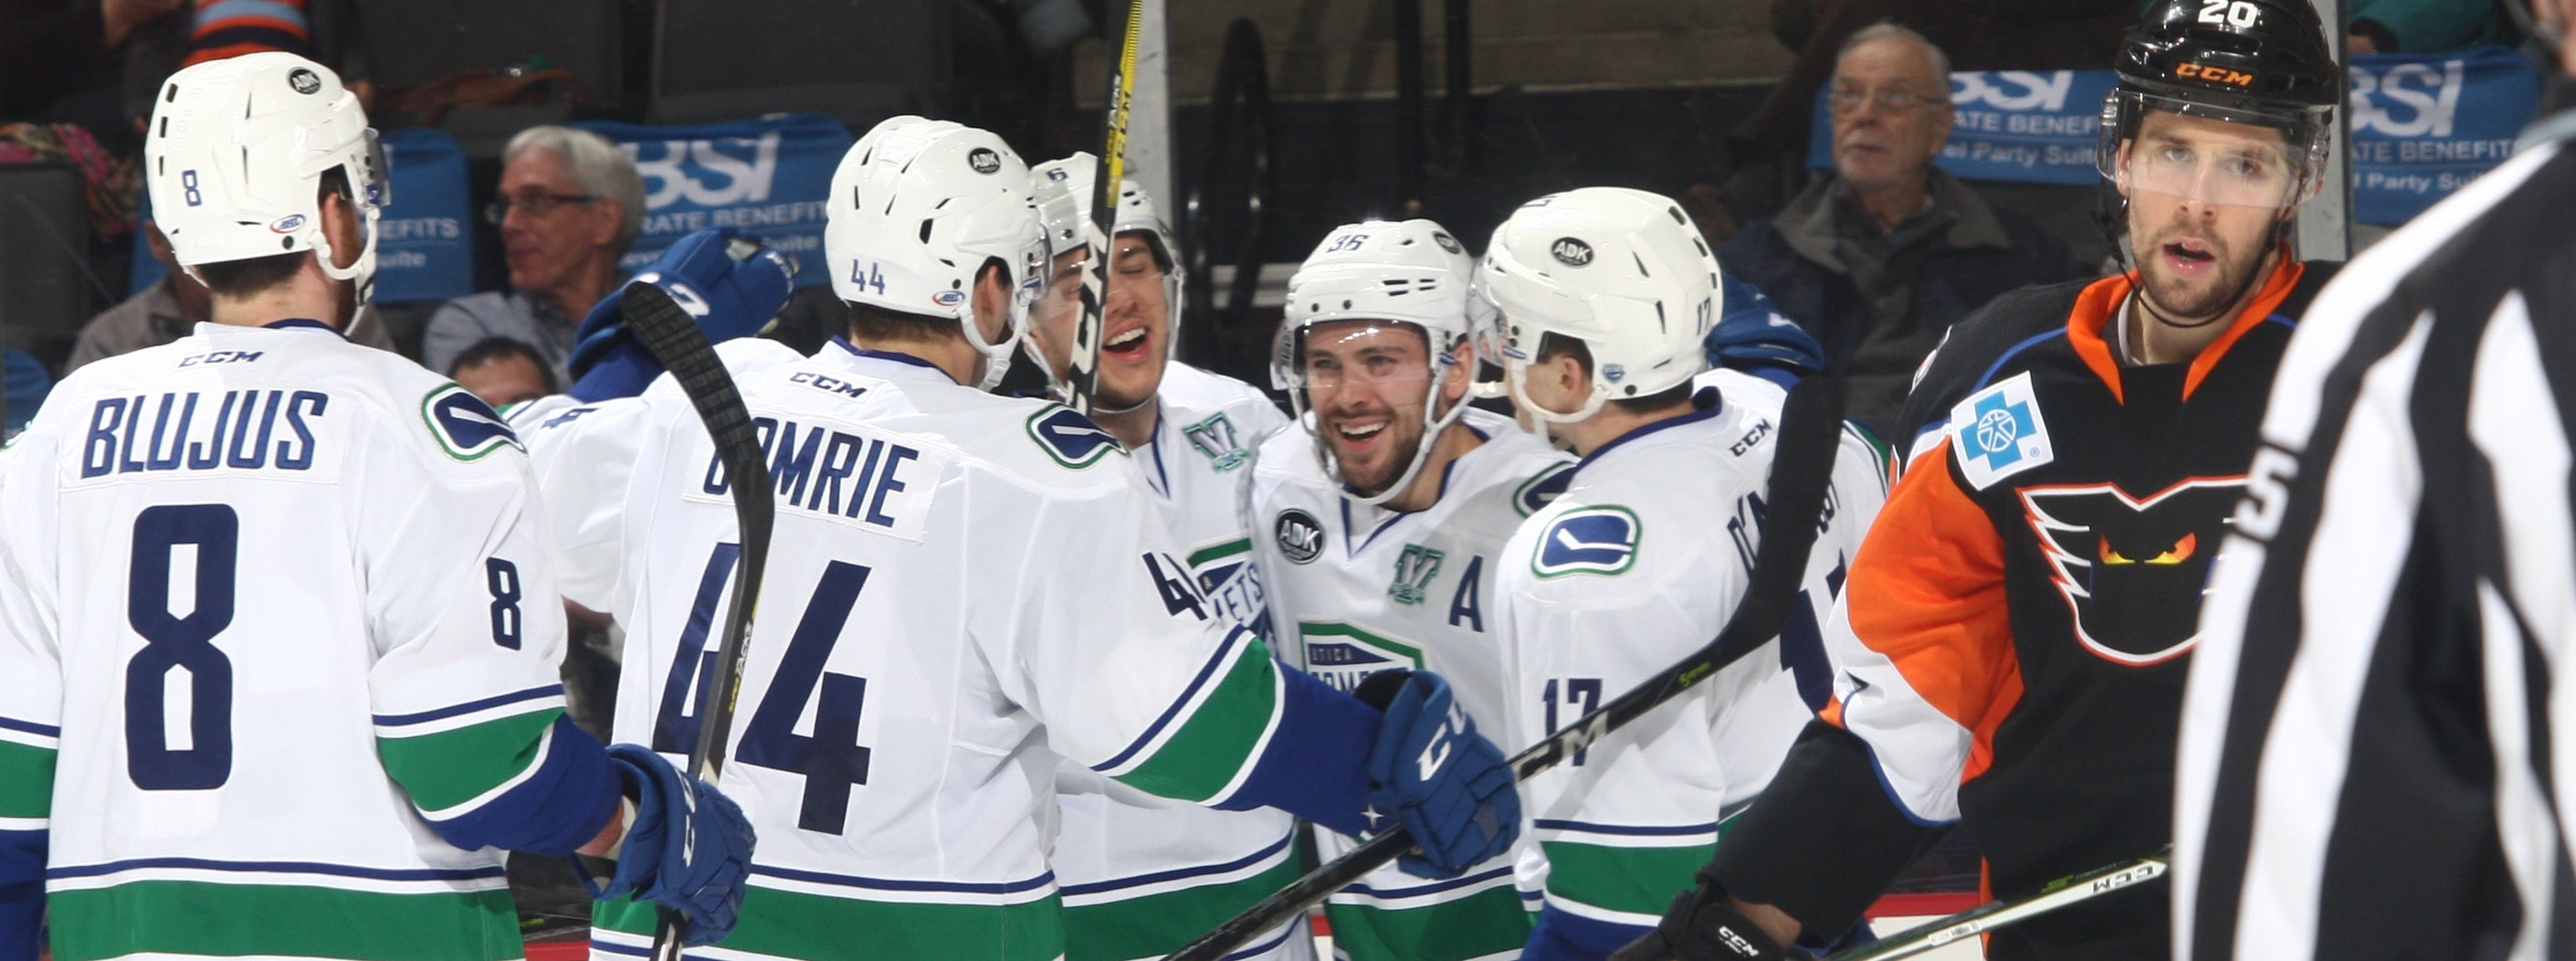 HAMILTON'S TWO-GOAL NIGHT LIFTS COMETS PAST PHANTOMS IN OVERTIME